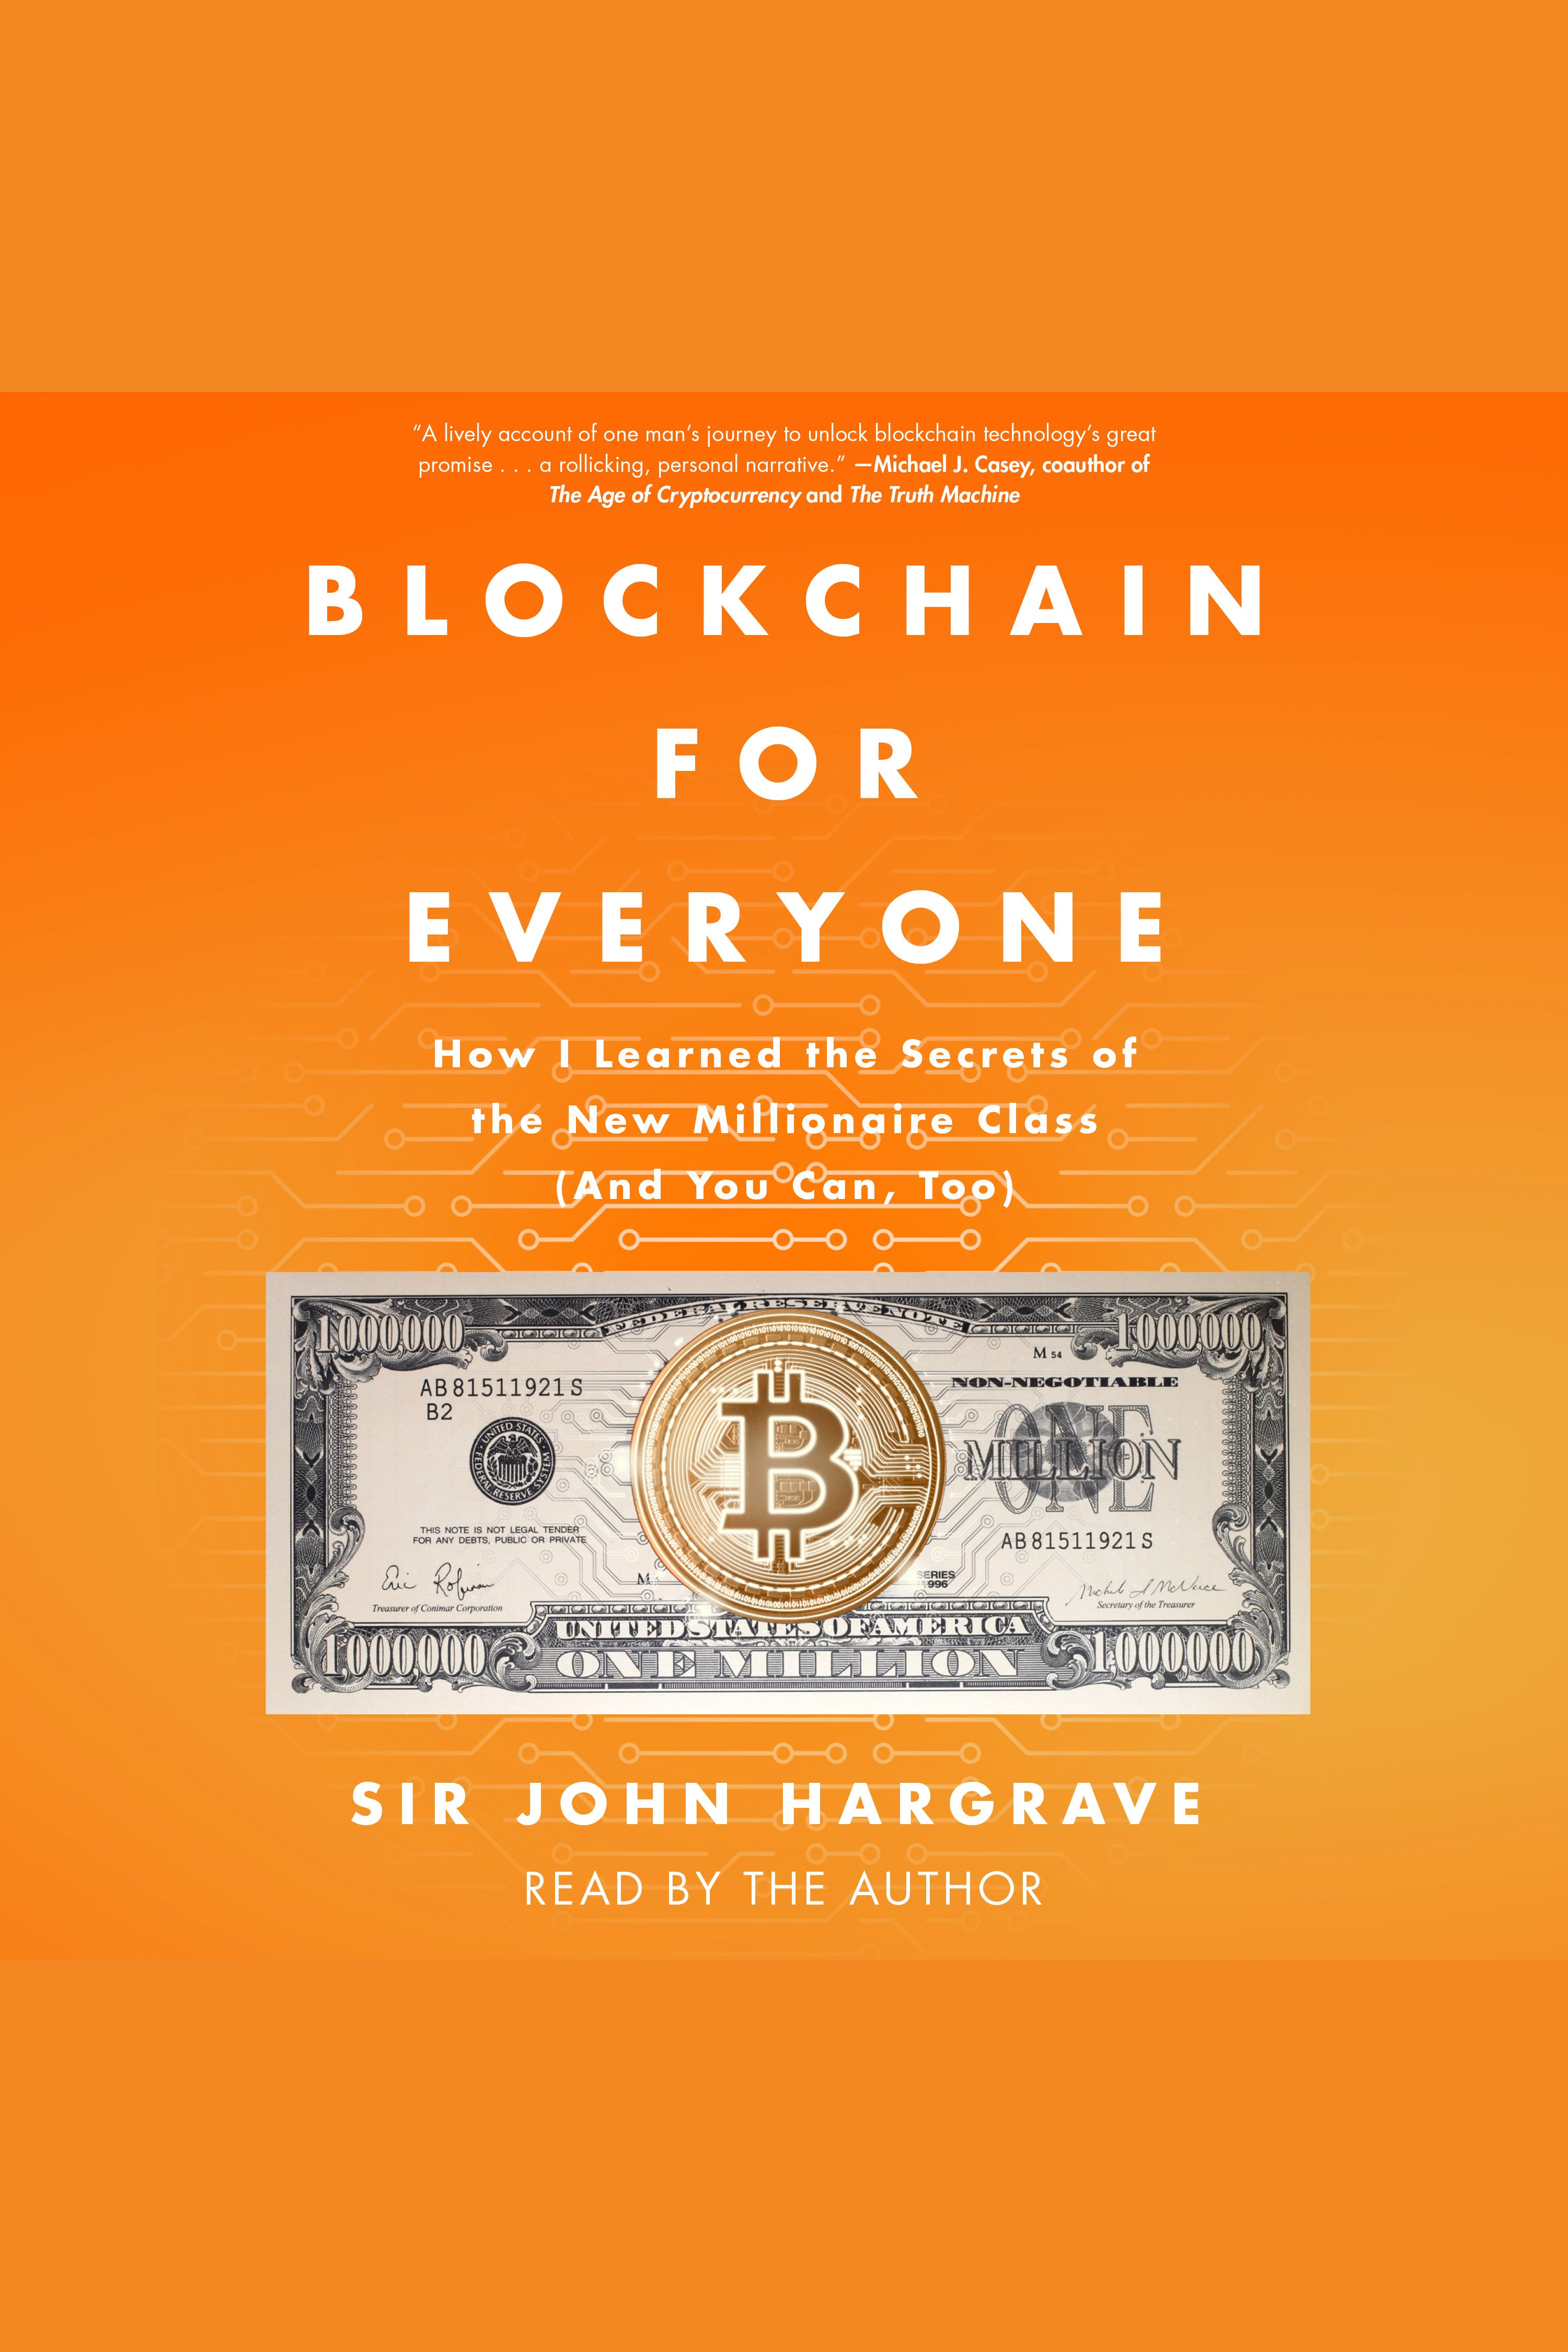 Blockchain for Everyone How I Learned the Secrets of the New Millionaire Class (And You Can, Too)